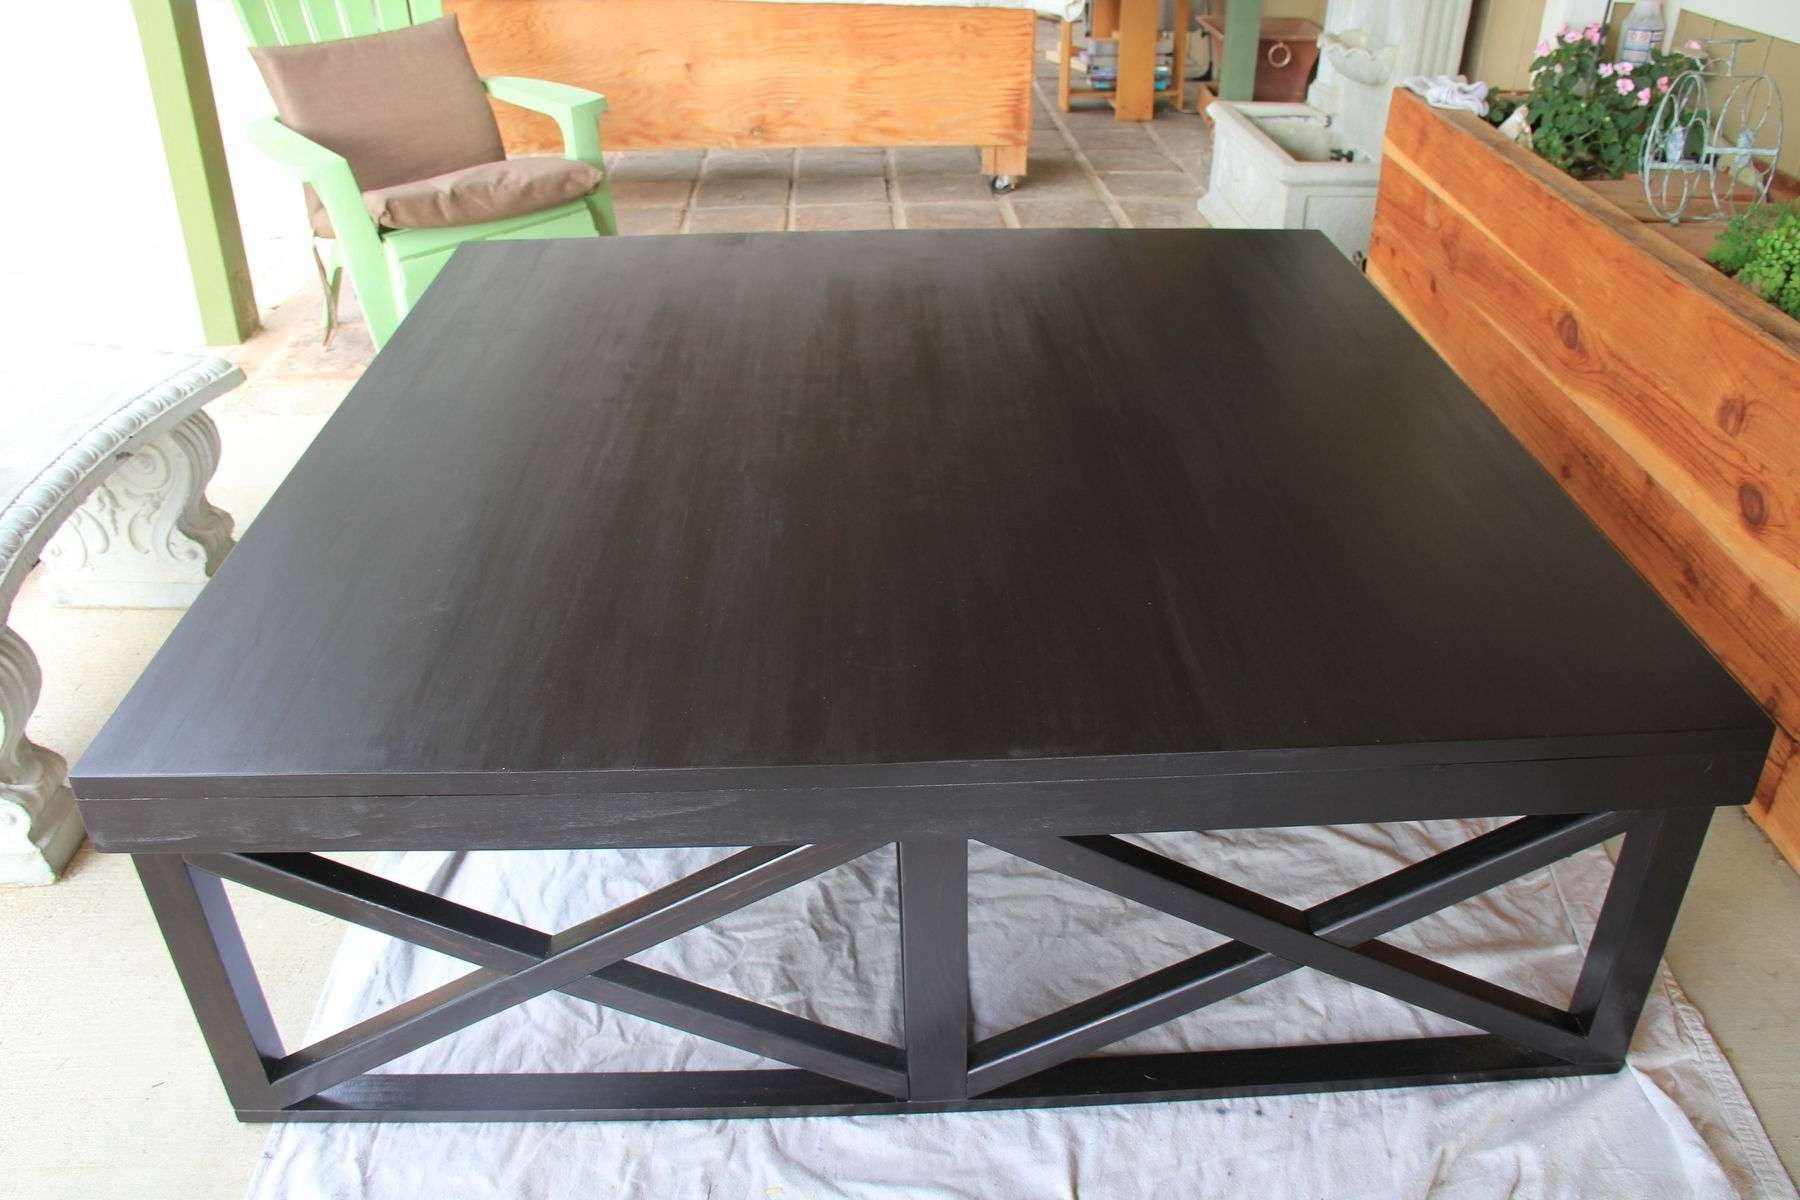 Custommade Within Most Up To Date Handmade Wooden Coffee Tables (View 6 of 20)